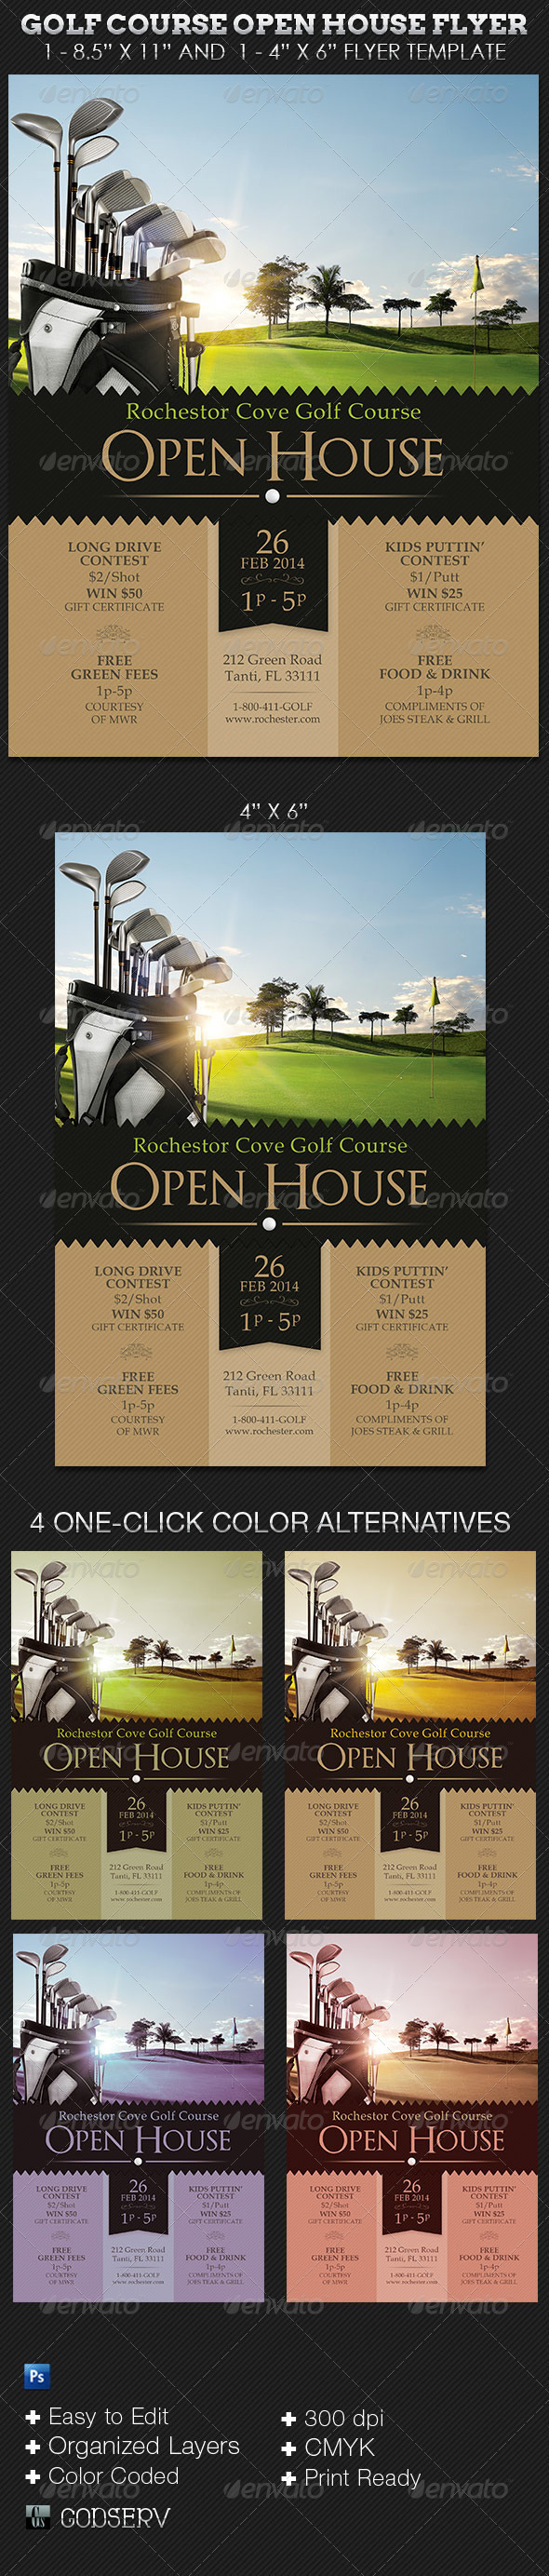 Golf course open house flyer templates on behance for Open house brochure template